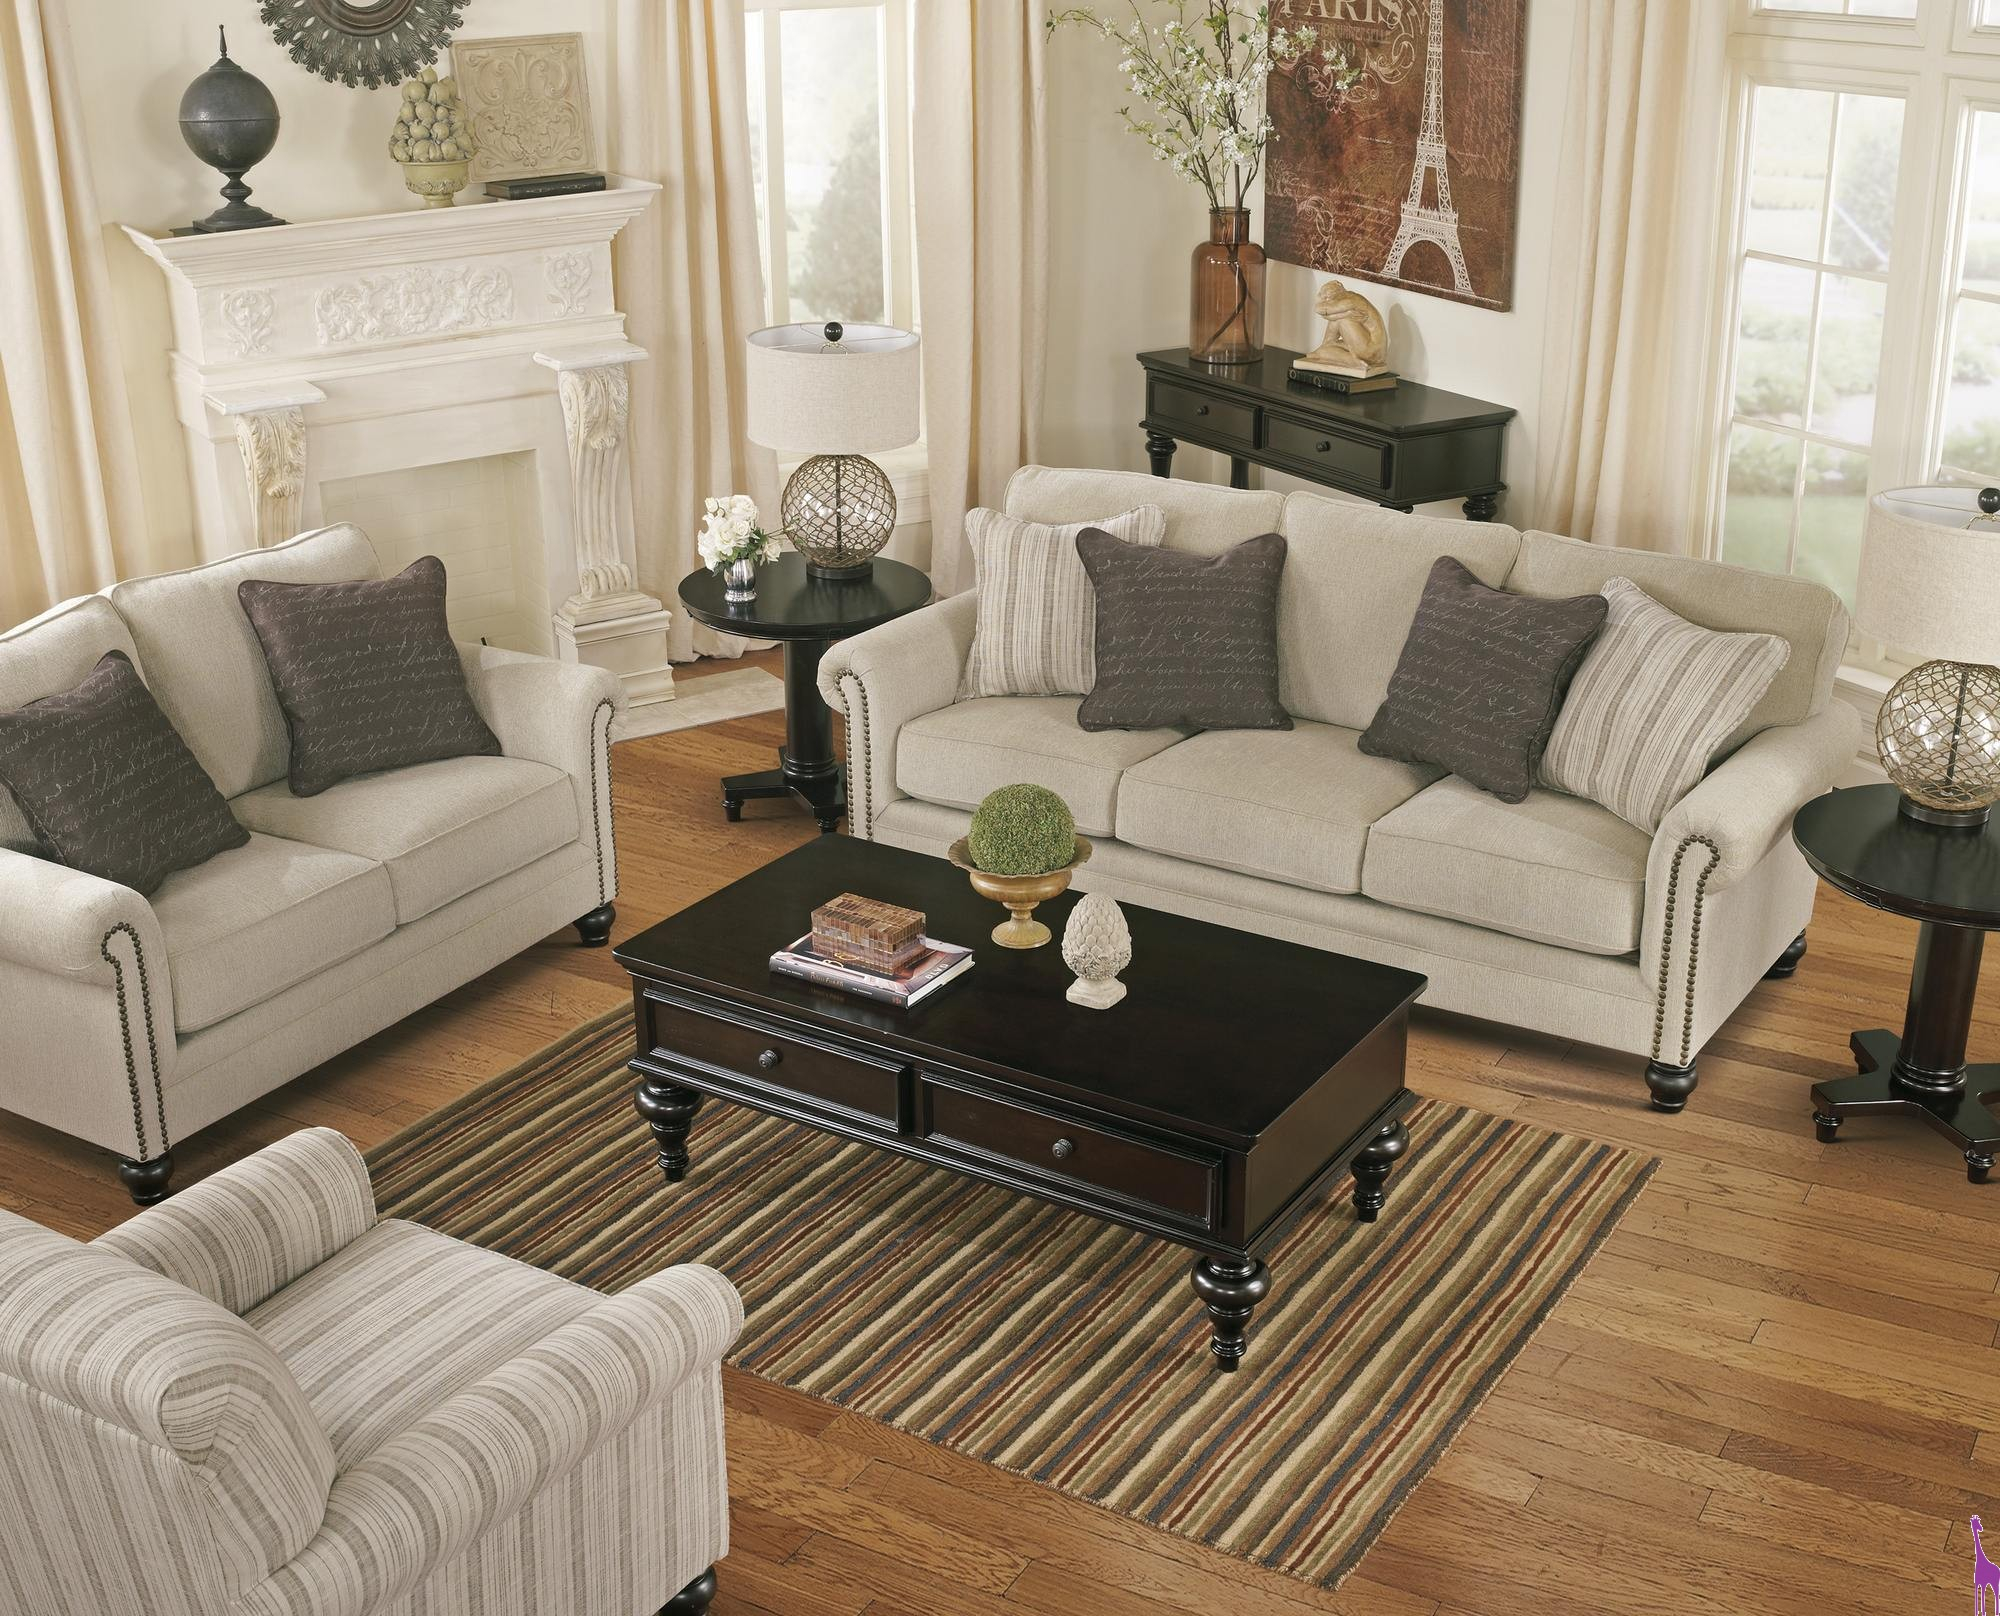 Milary Living Room Set Ashley 130 throughout 14 Smart Ways How to Makeover Ashley Living Room Set